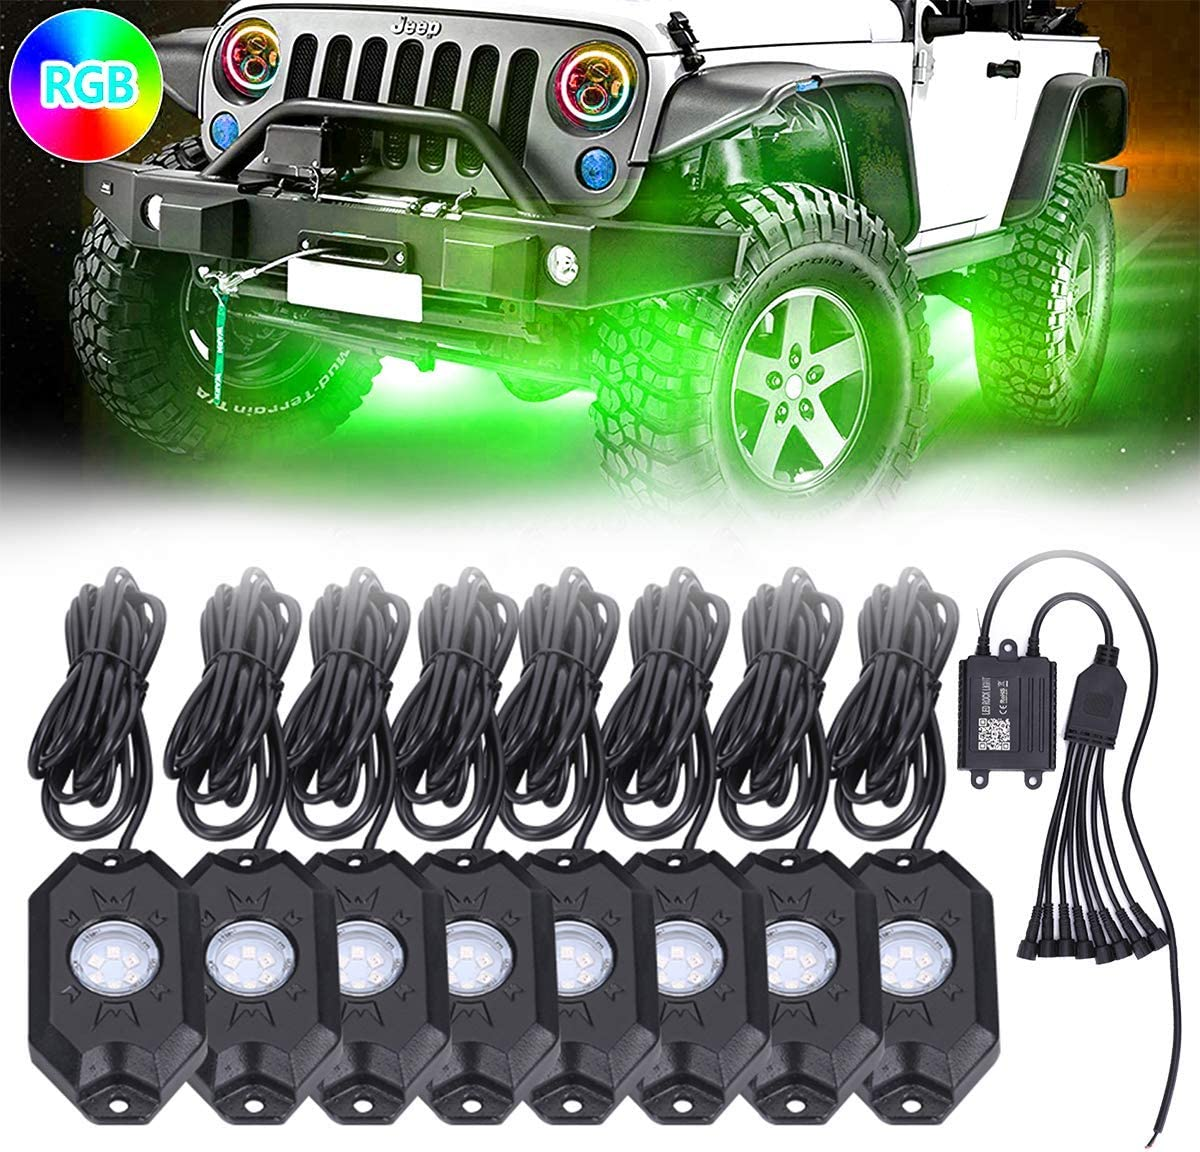 Music Wireless Bluetooth Controller 6pcs Led Chips Mode of DIY 4 Pods Flash and Timer for Exterior Cars Truck ATV SUV Jeep Boat Yacht Motorcycle AMONLY RGB Neon Led Rock Lights